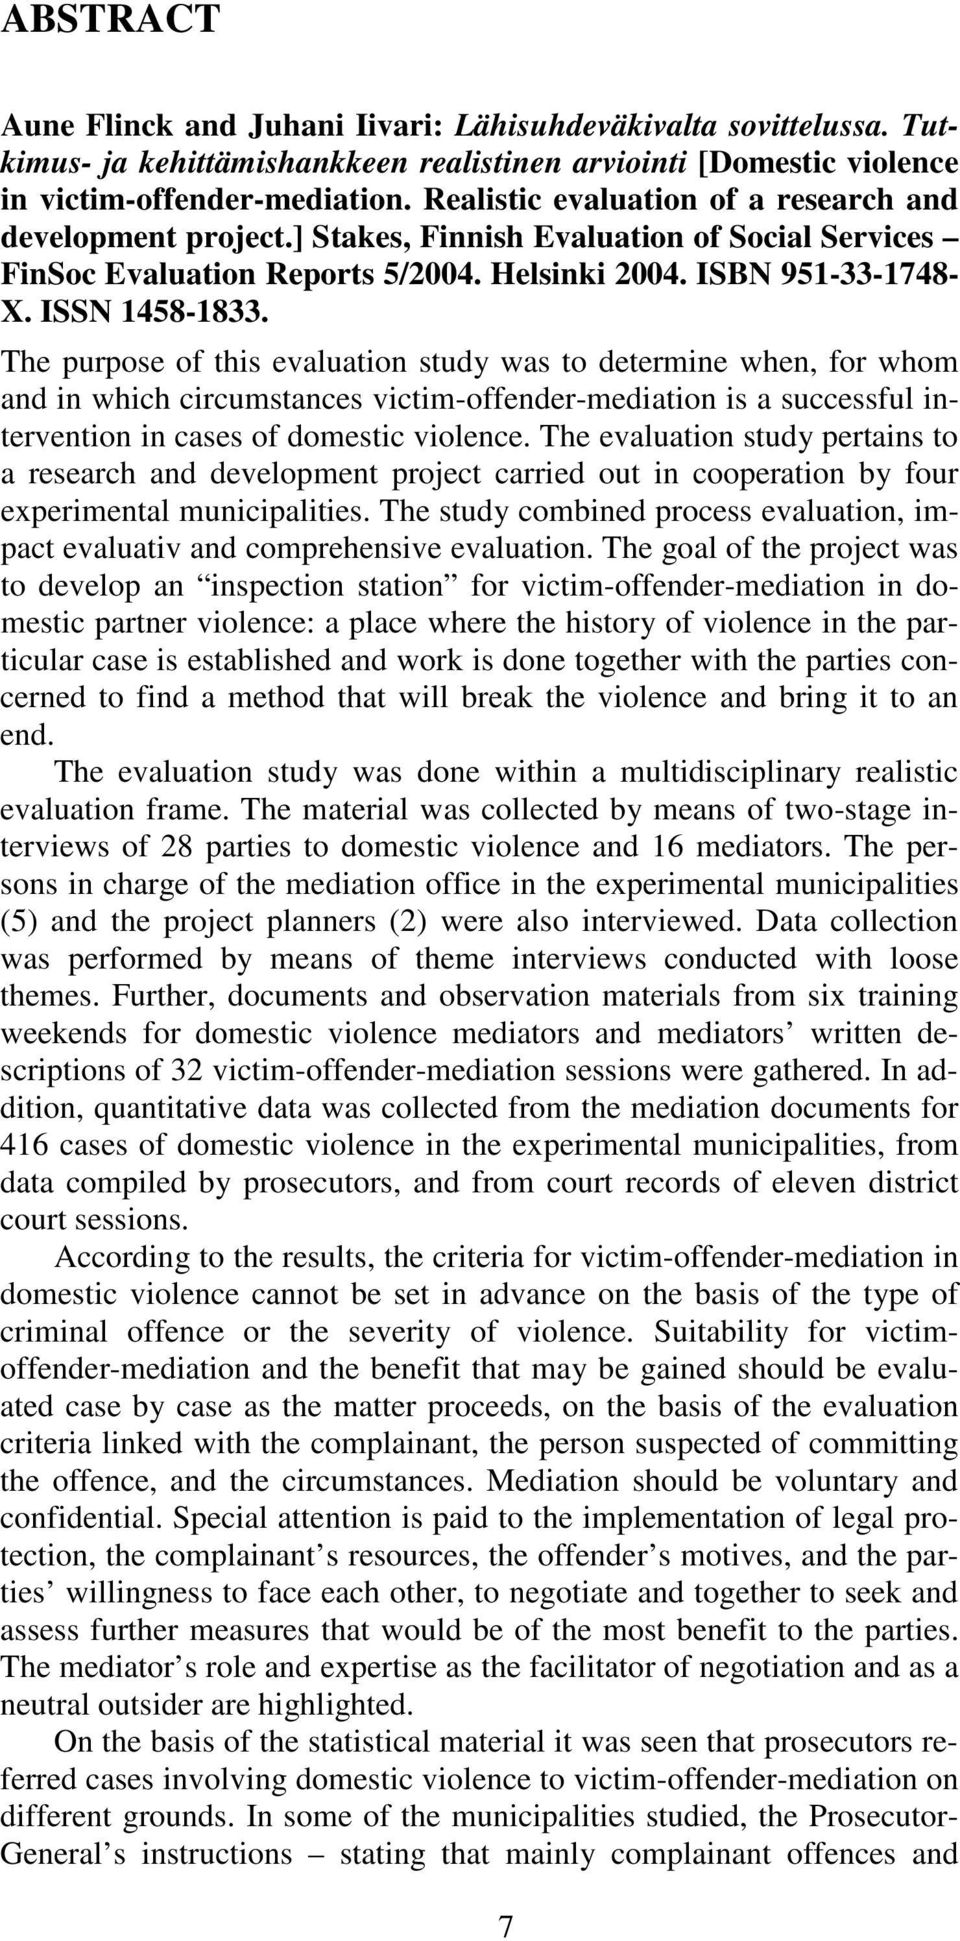 The purpose of this evaluation study was to determine when, for whom and in which circumstances victim-offender-mediation is a successful intervention in cases of domestic violence.